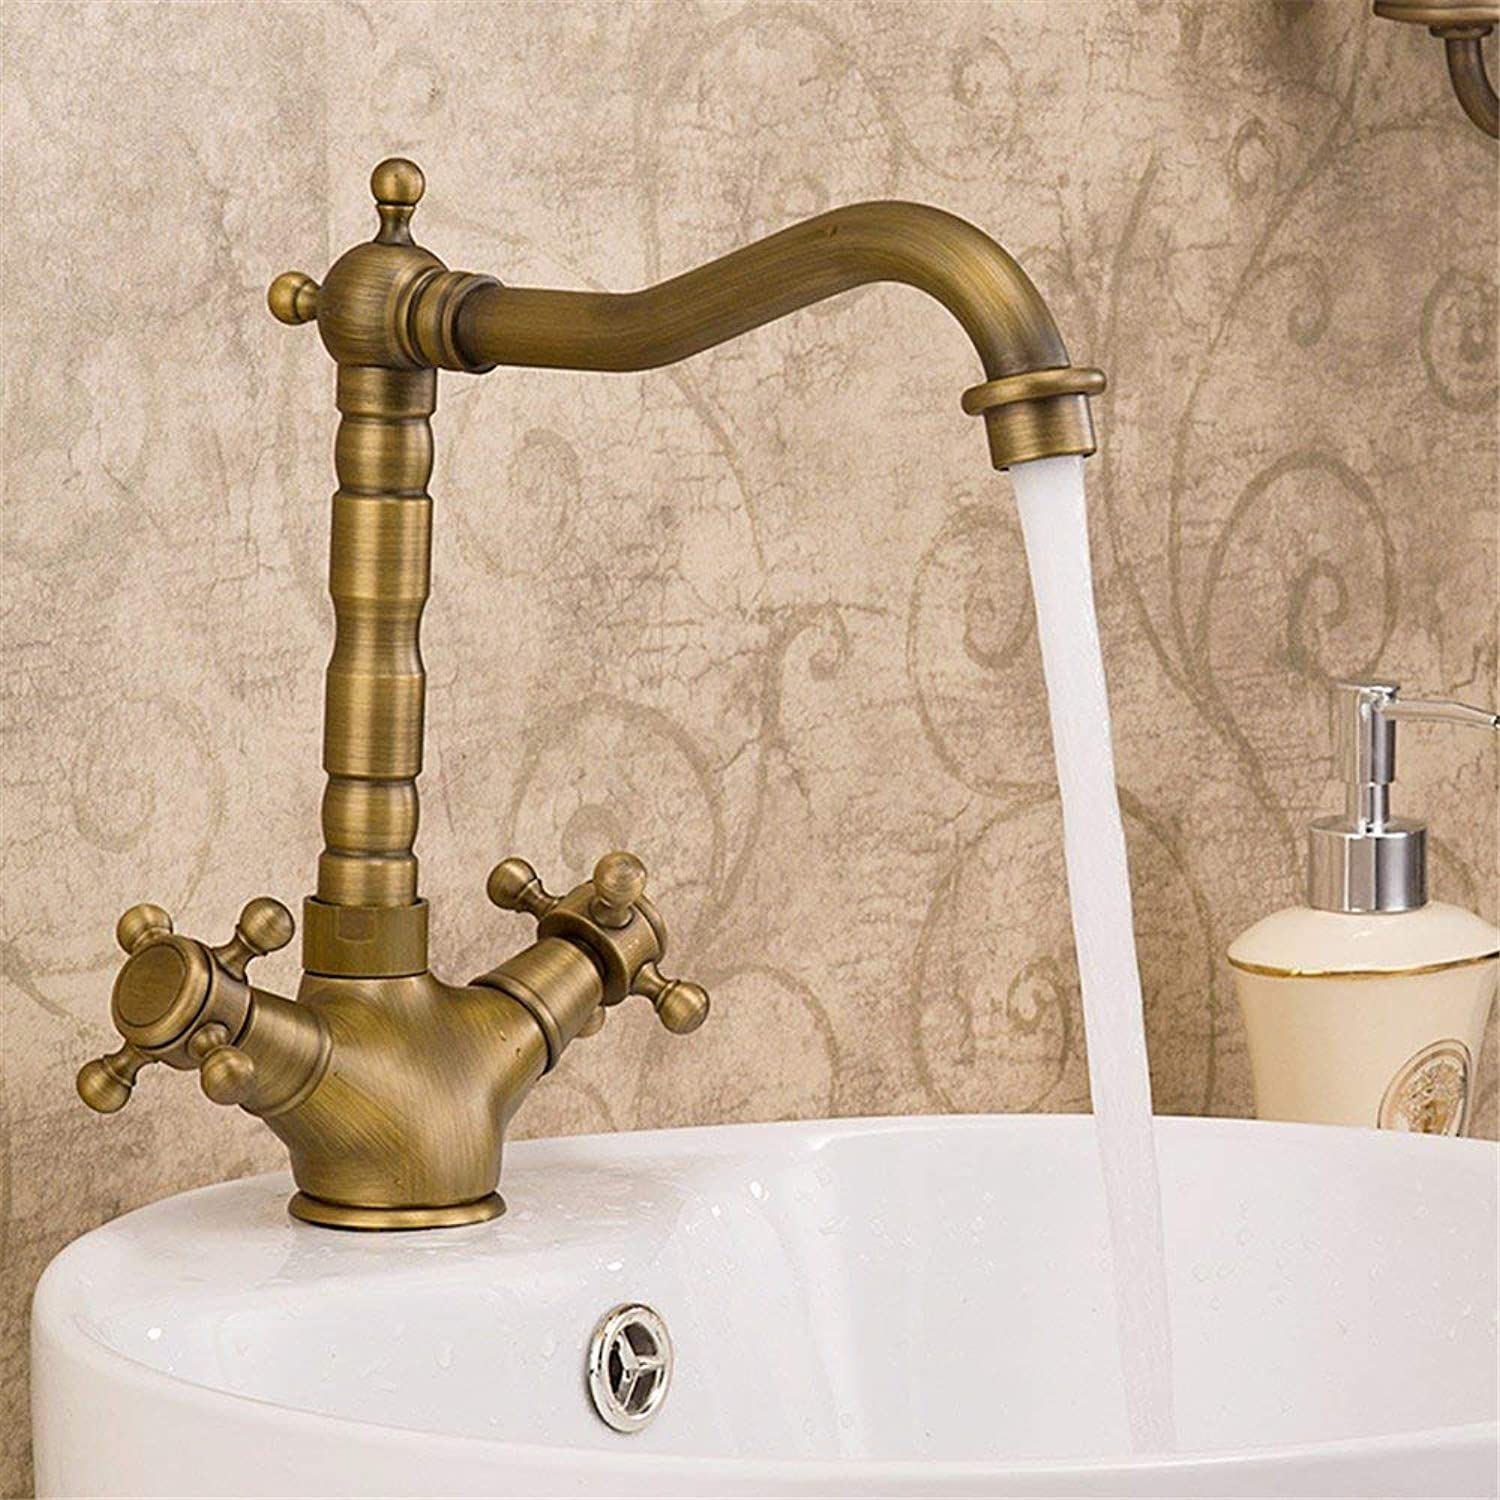 Copper double handle hot and cold water faucet retro swivel tap (color   -, Size   -)